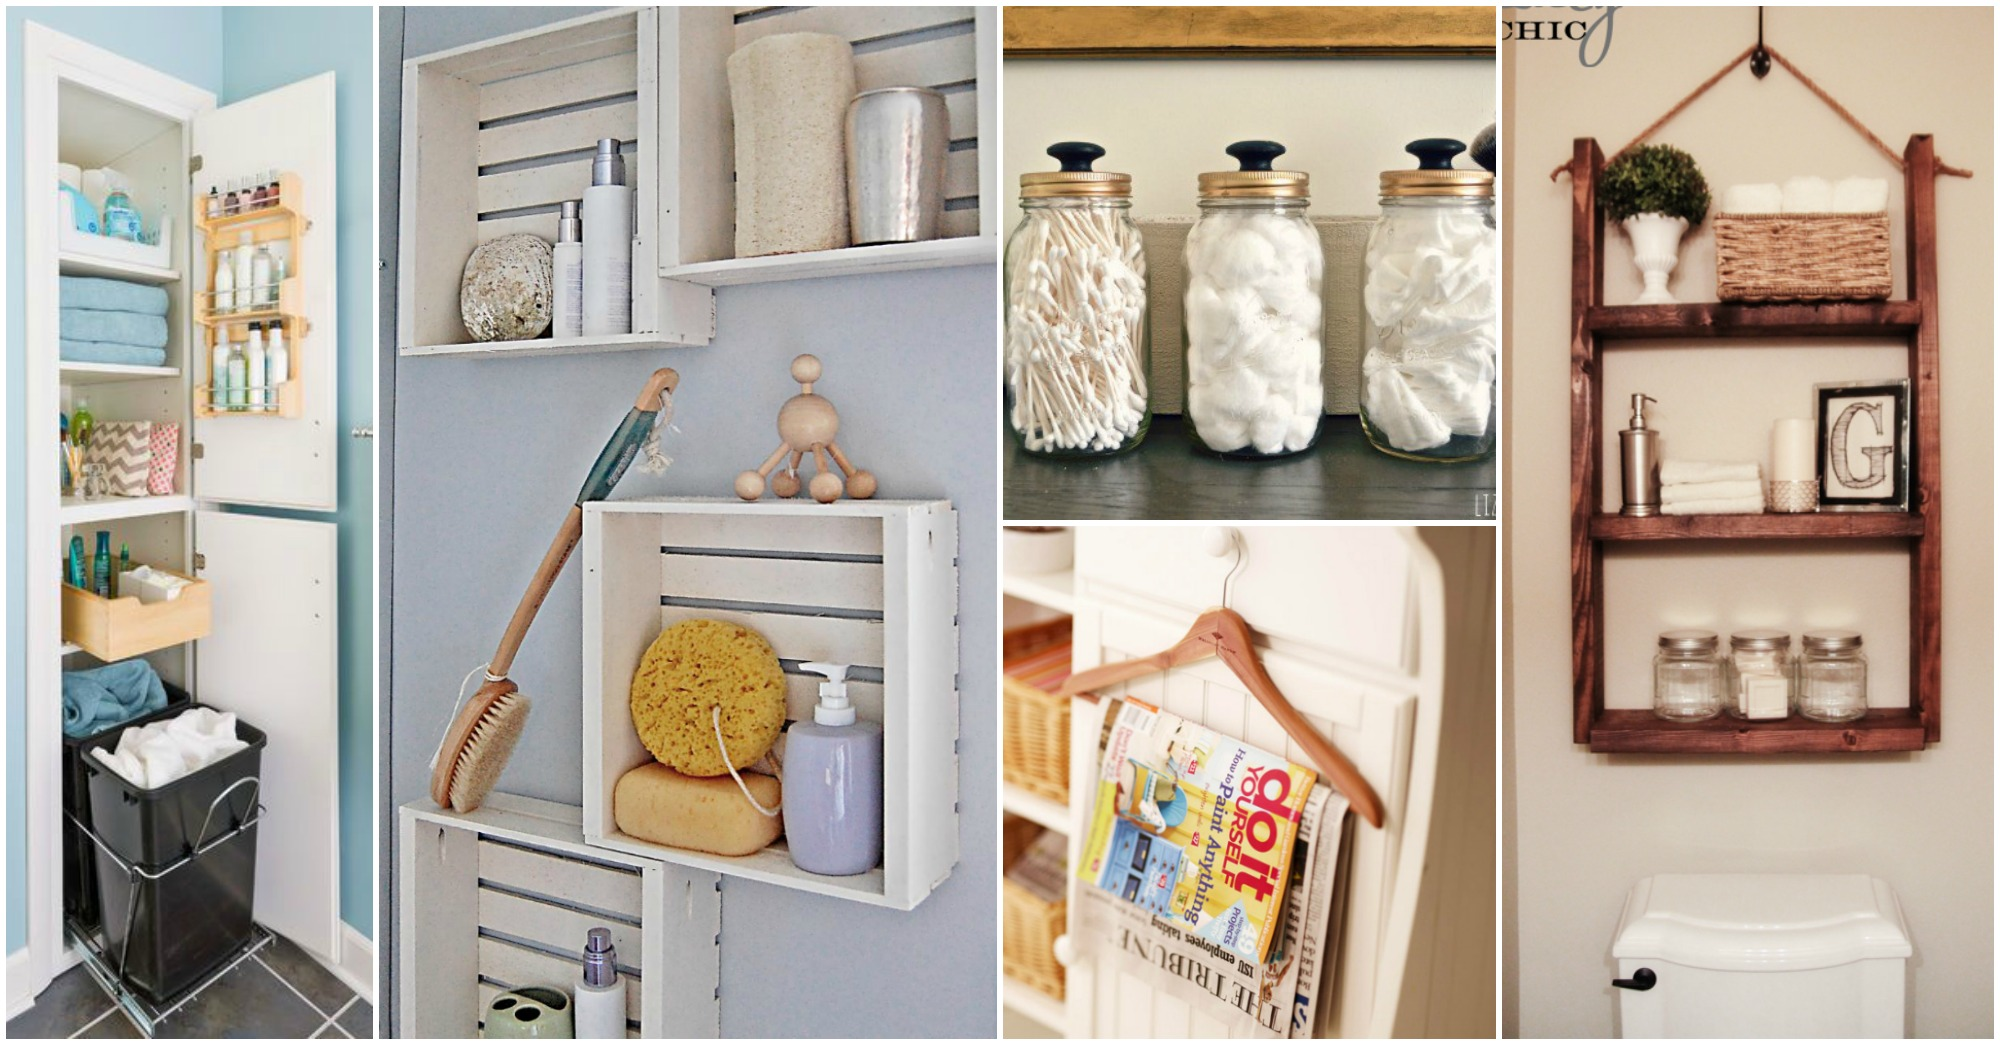 10 Small Bathroom Organization Hacks You Should Not Miss